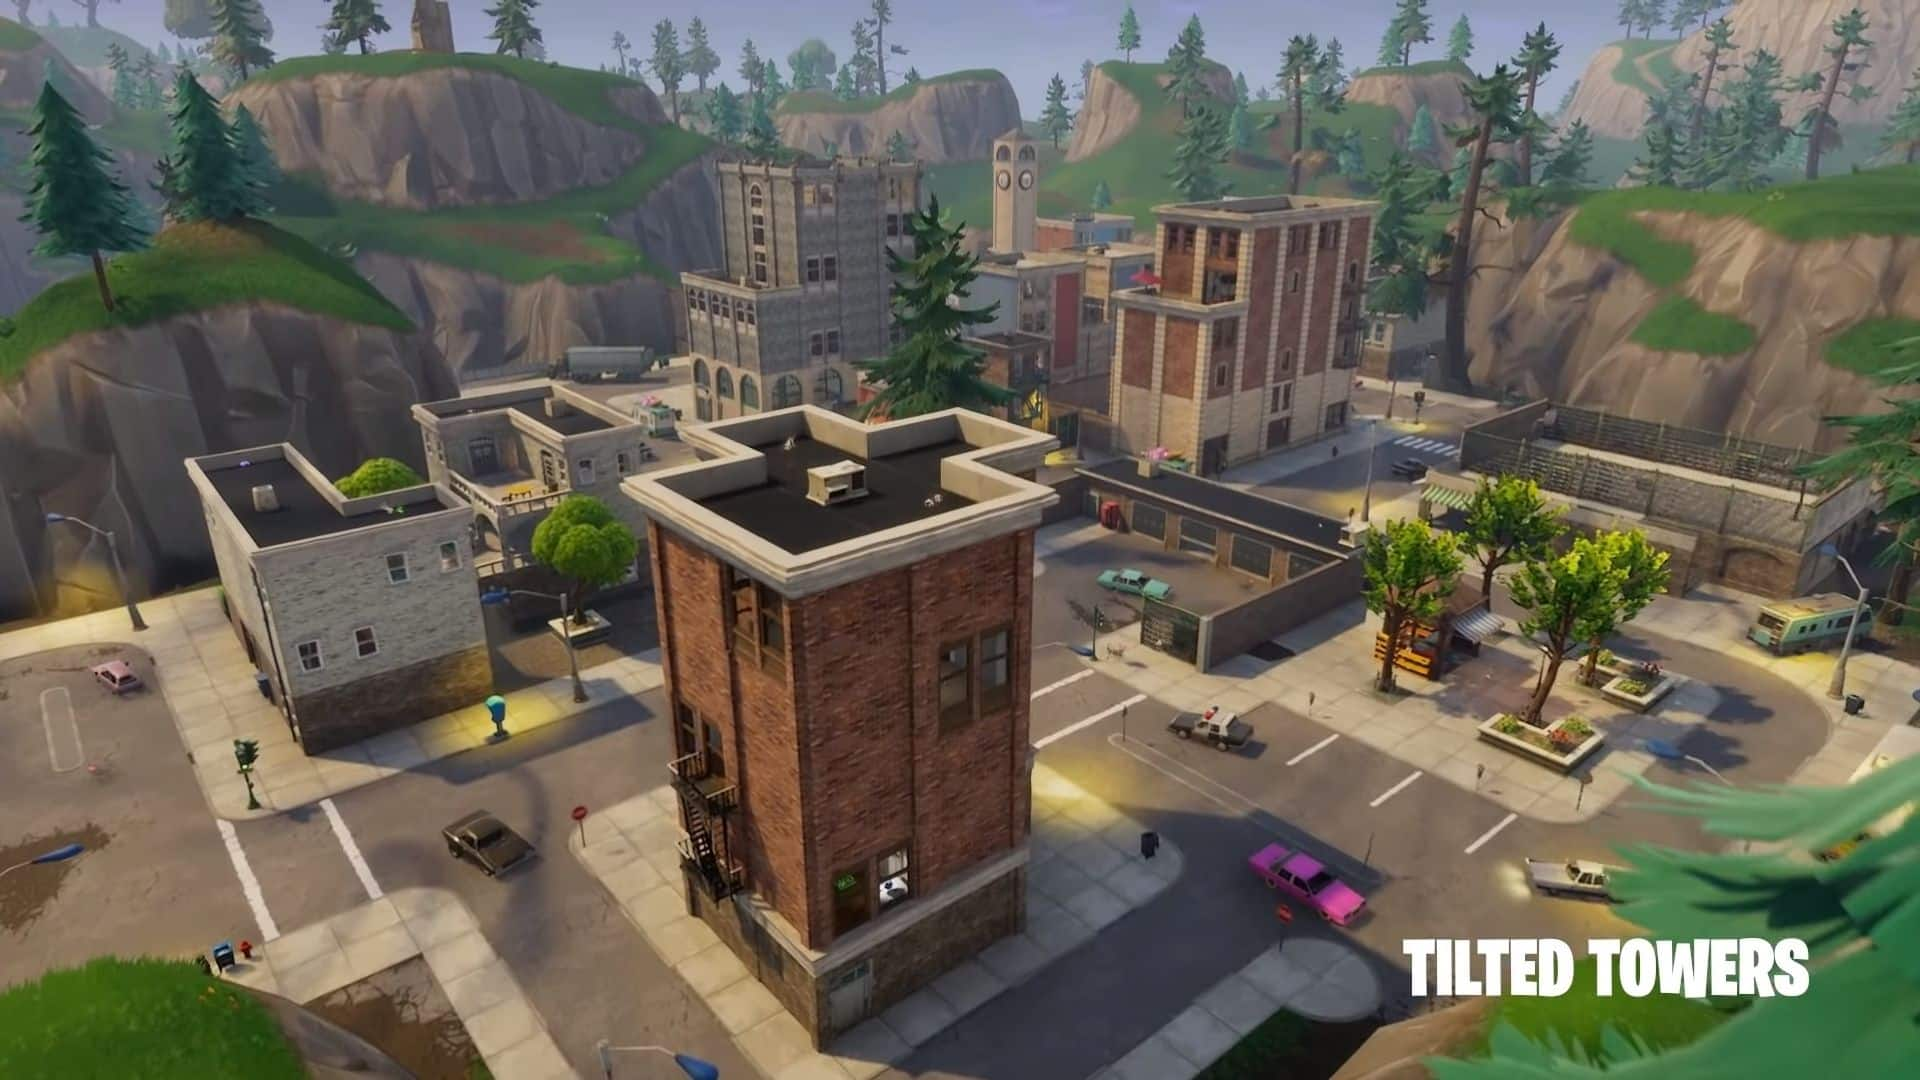 tilted towers in fortnite